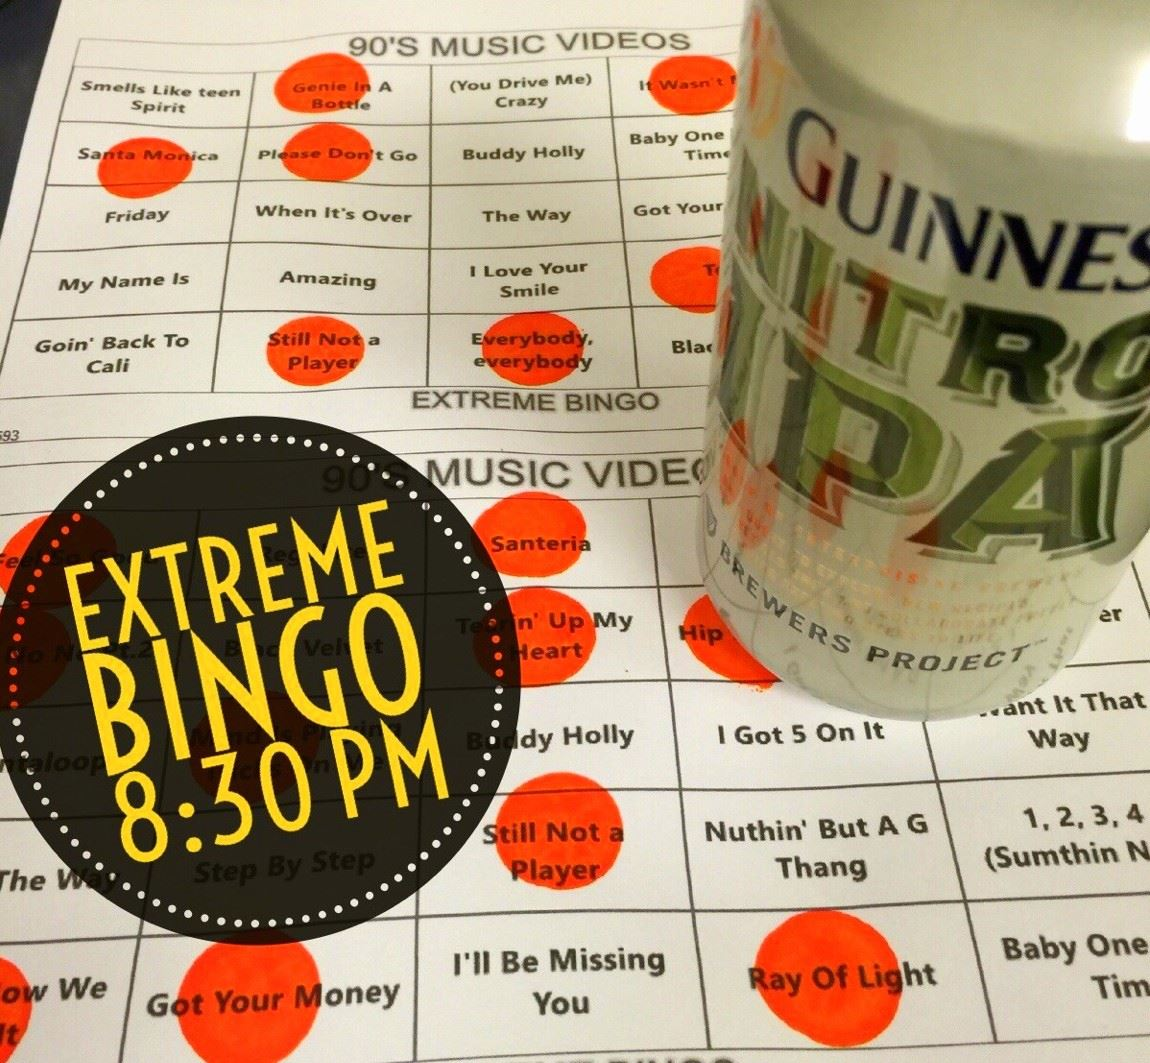 Extreme Bingo at The Green Briar Pub [05/31/16]